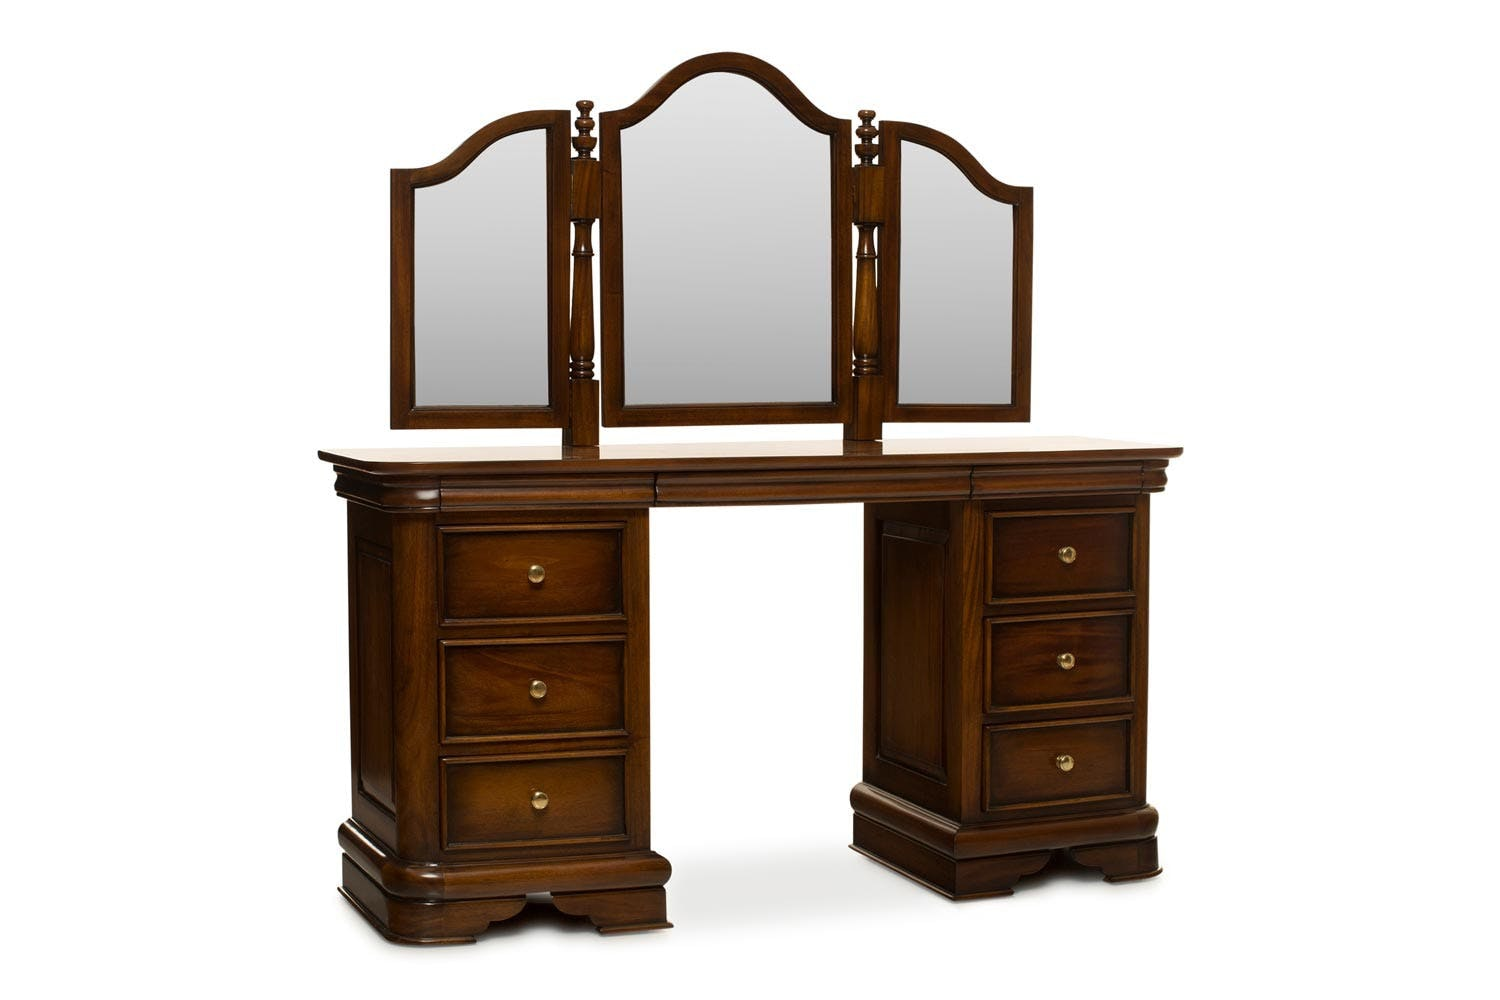 Barouge Dressing Table | 9 Drawer